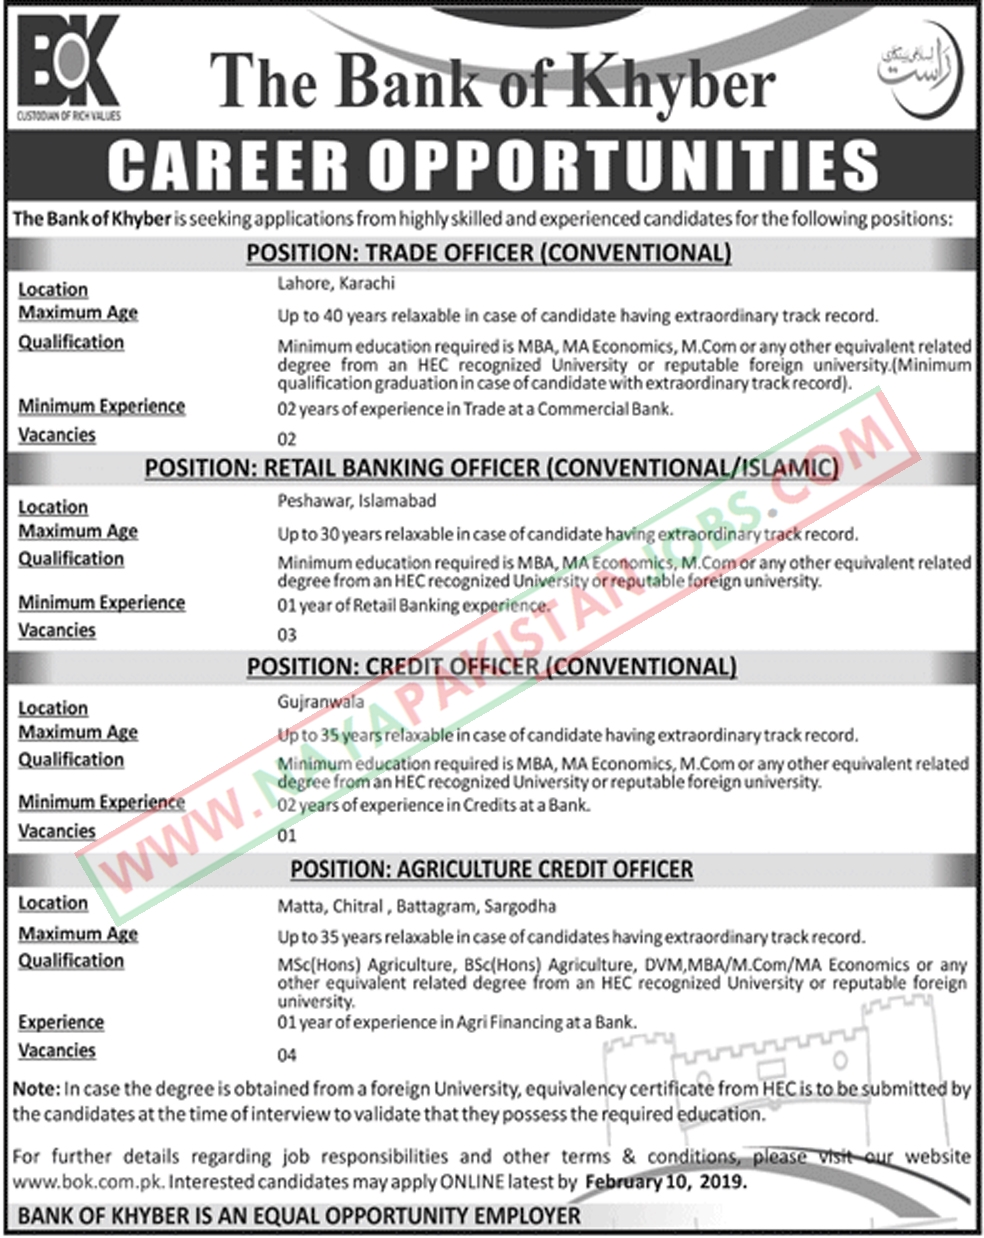 Bok Jobs, Bank of Khyber Jobs, The Bank Of Khyber Jobs 2019 for Multiple Positions